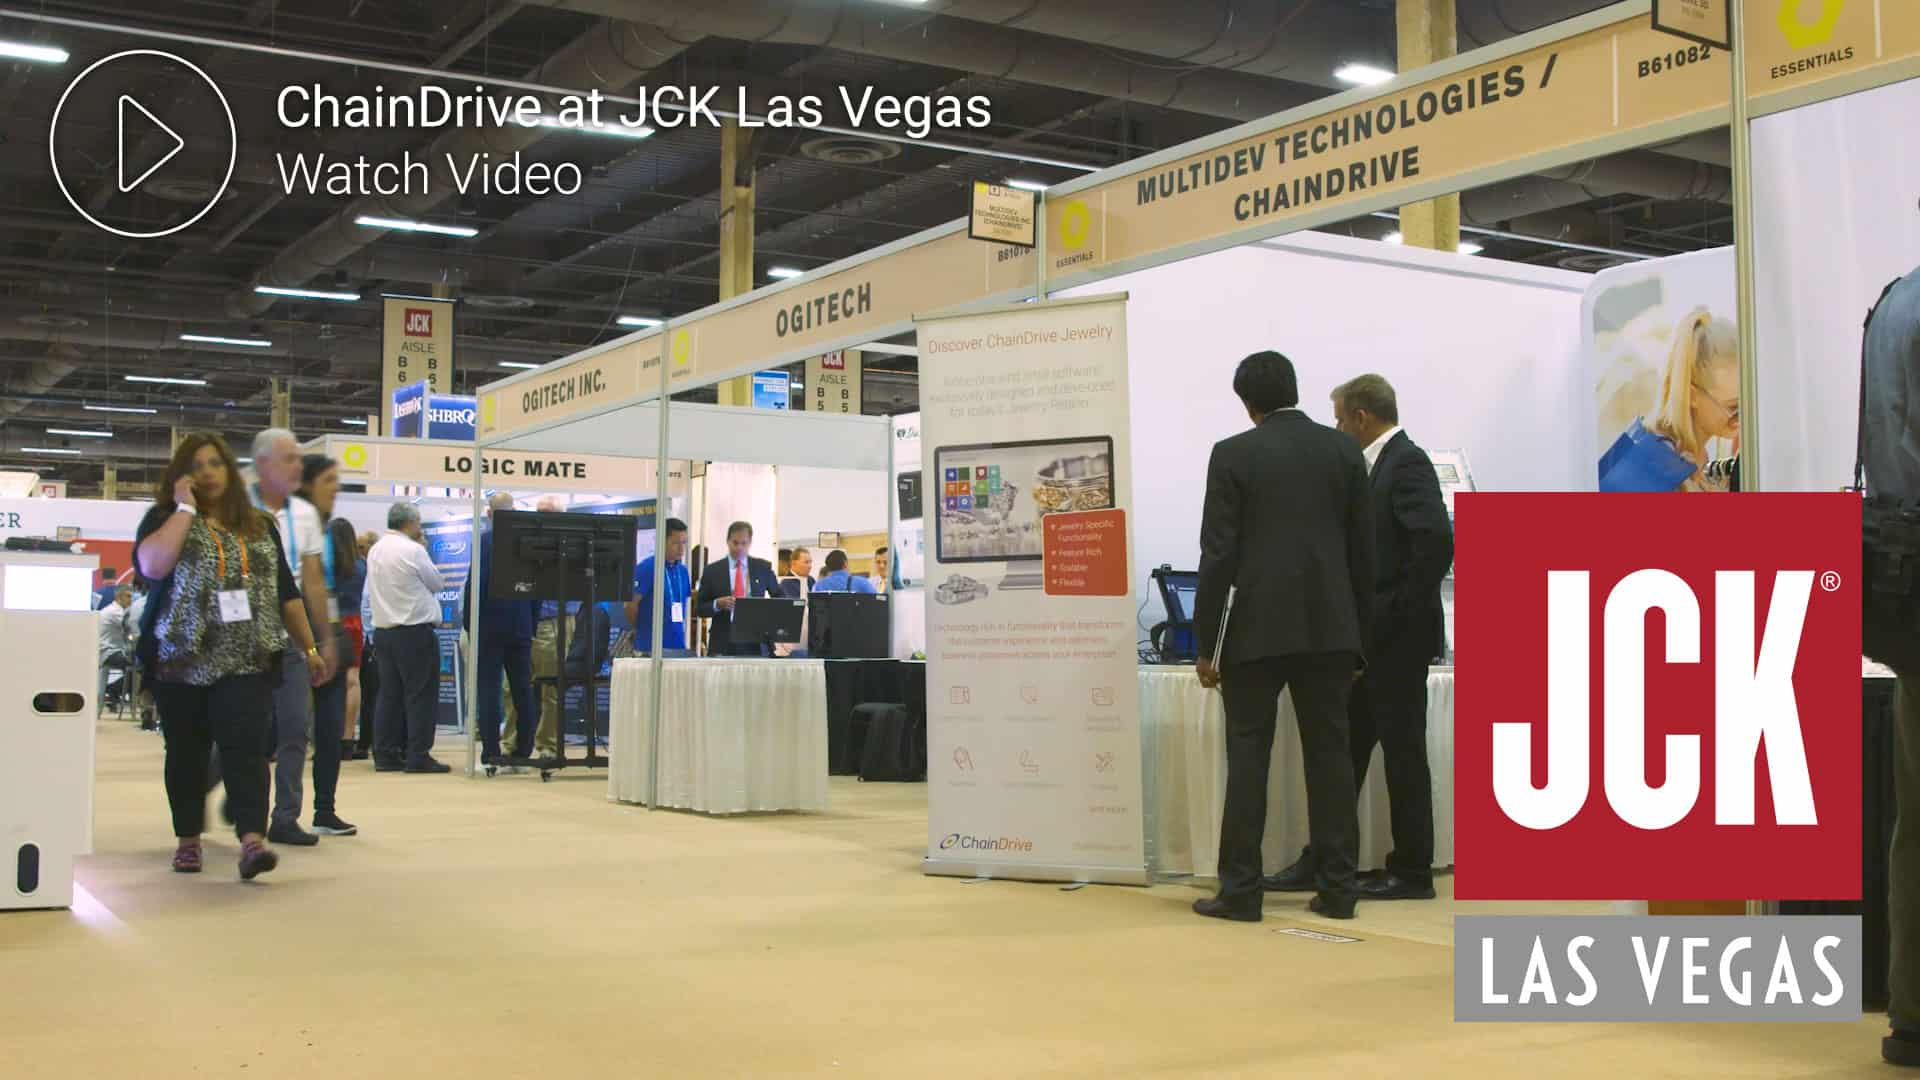 Retail Recources - JCK LAS VEGAS VIDEO